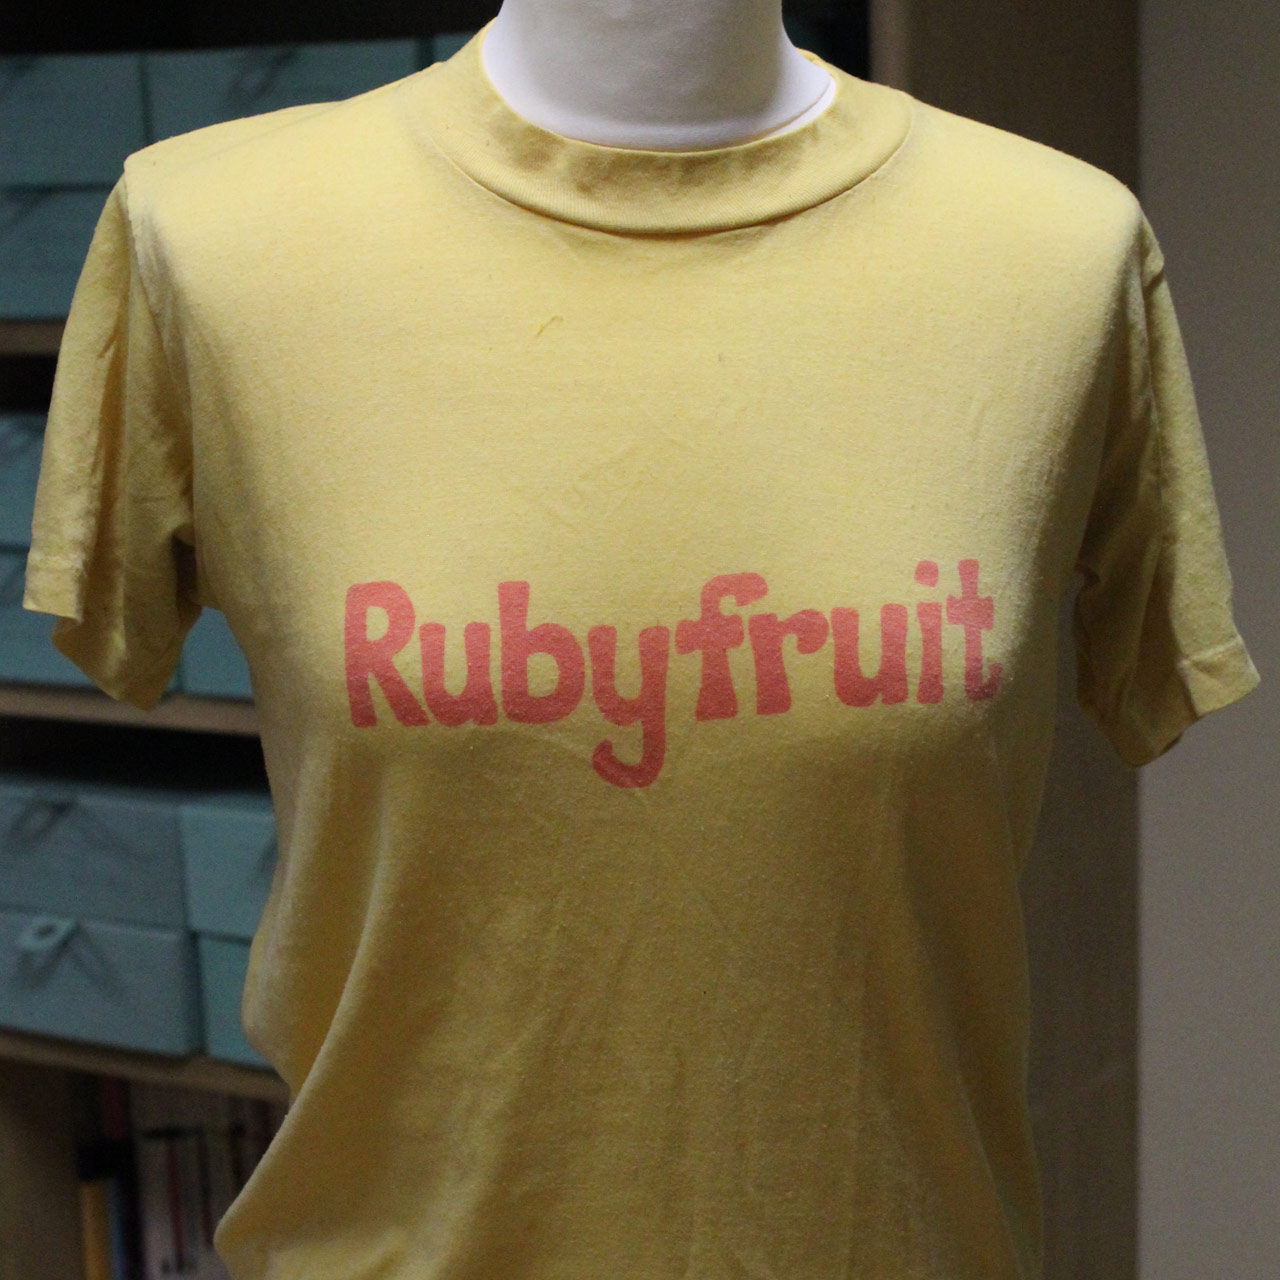 Rubyfruit T-shirt, unknown designer, c. 1980